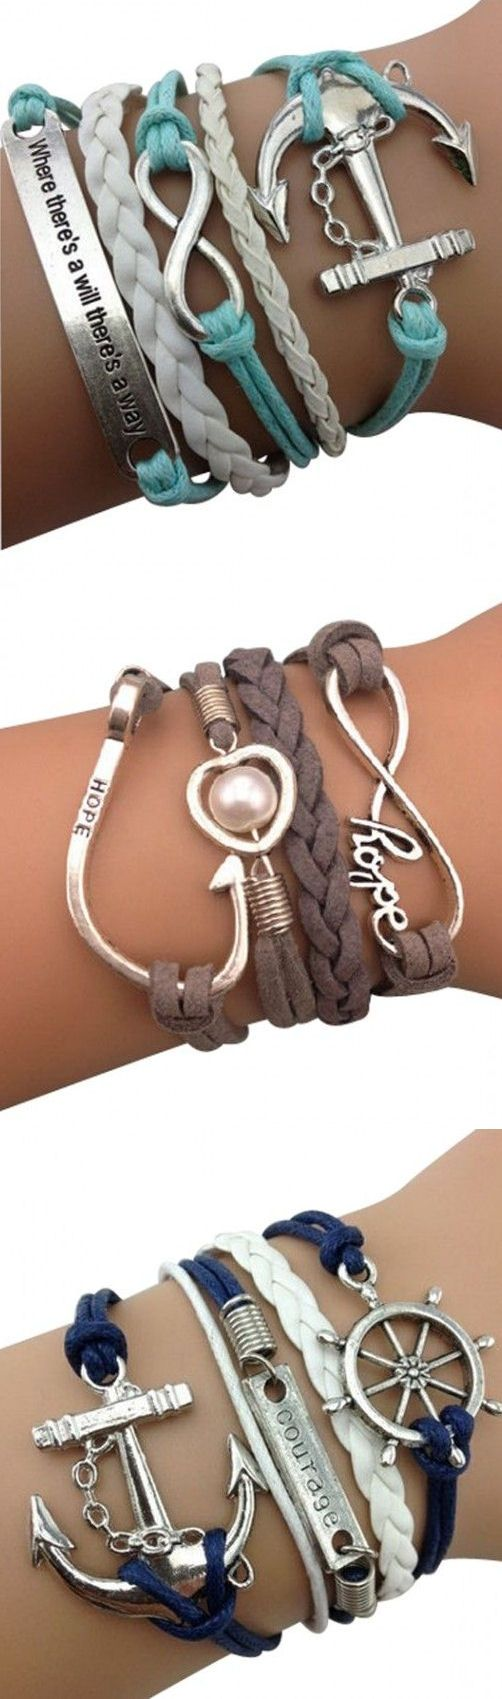 Nautical Anchor Arm Party Bracelets ♥ L.O.V.E.,diy bracelet from Costwe.com